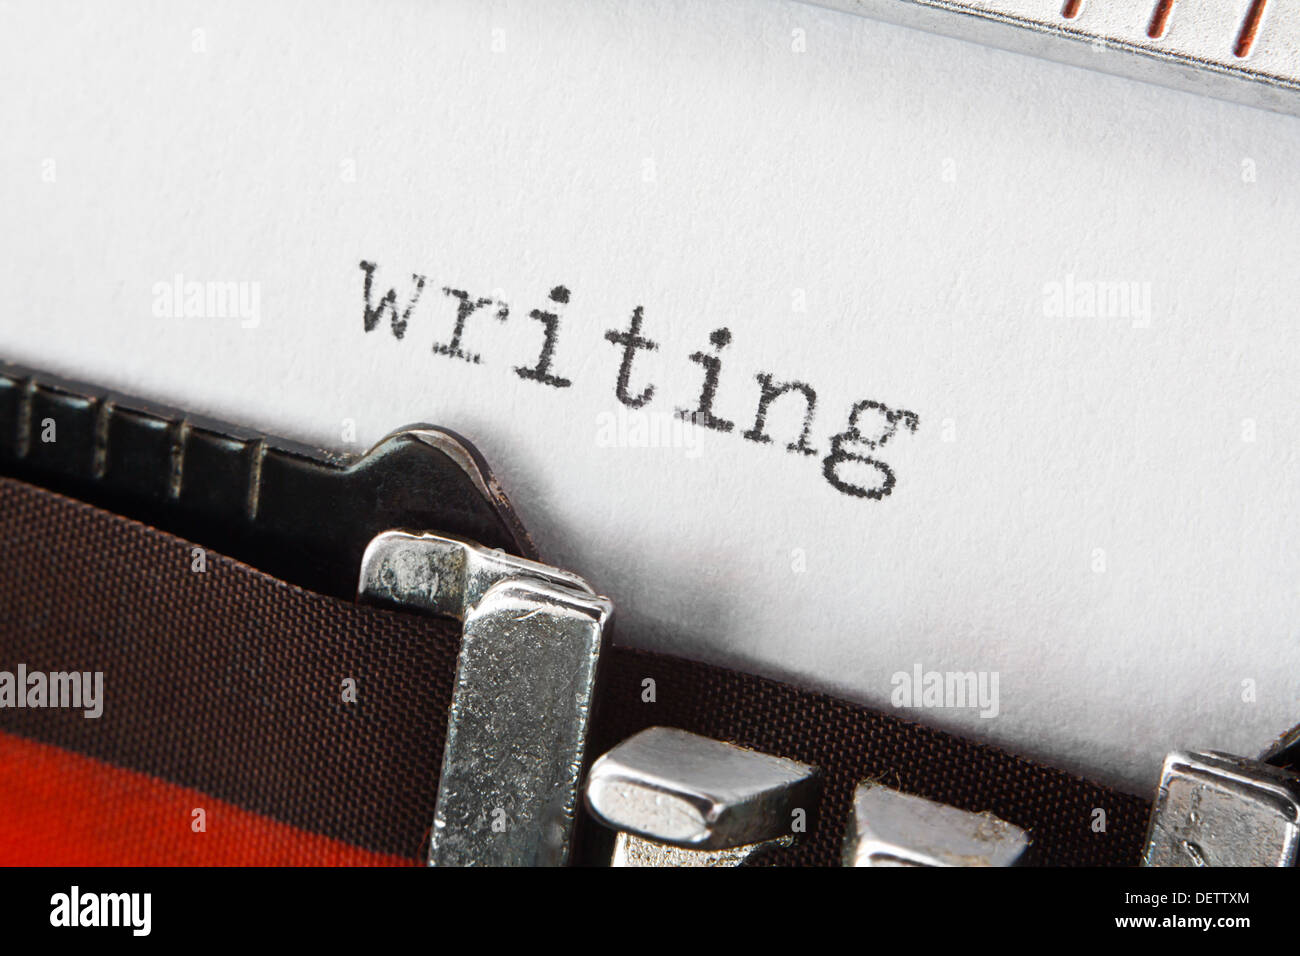 type spelling the word writing on a vintage typewriter, great concept for blogs, journalism, news, authors or the mass media - Stock Image